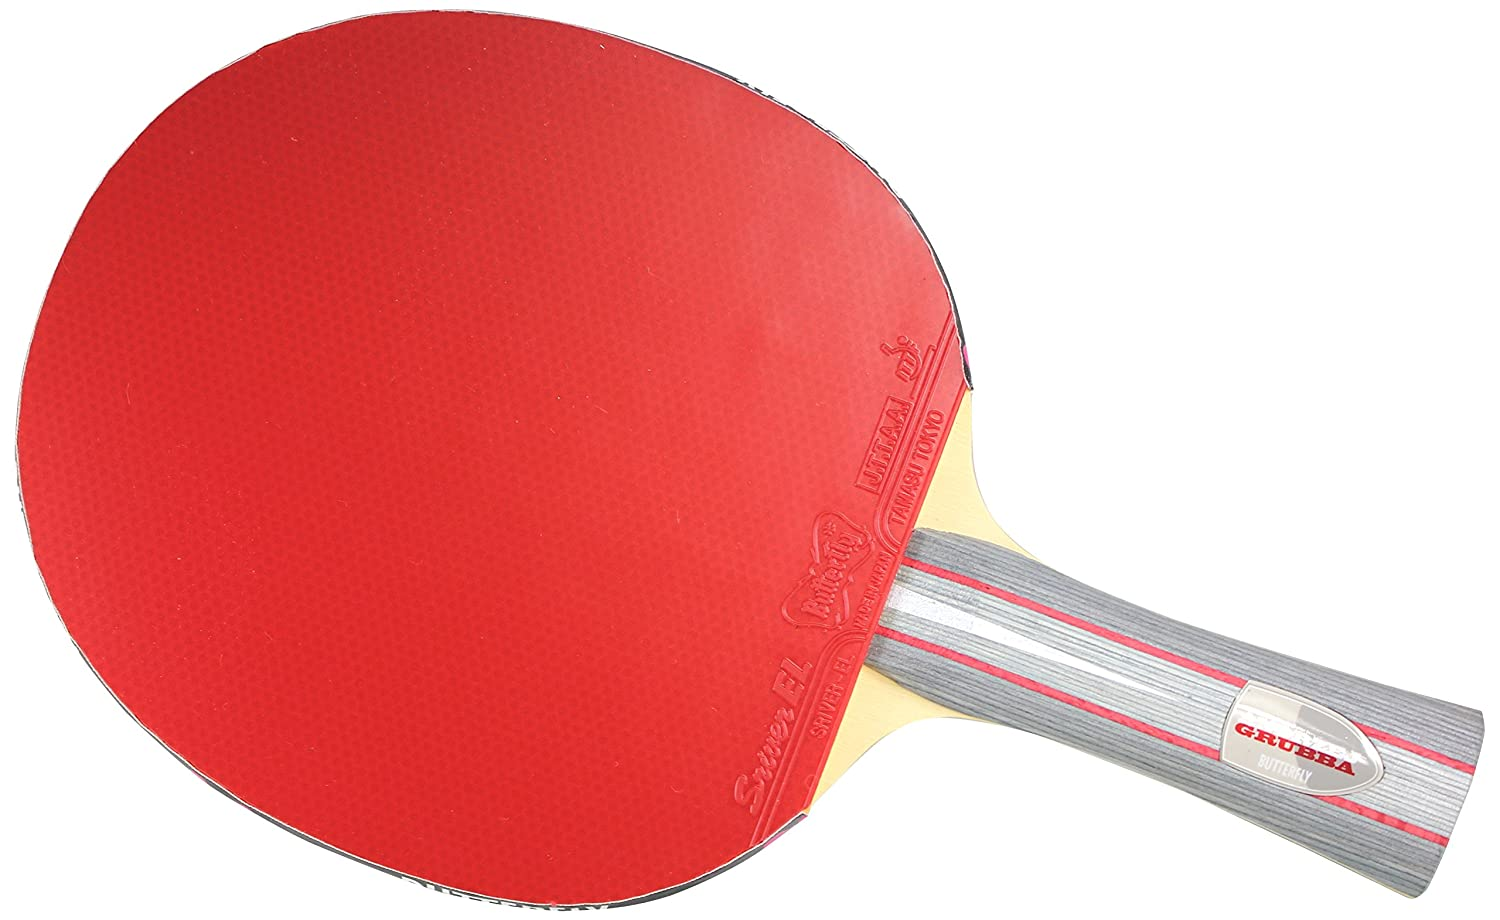 Killerspin Kido 5A RTG Table Tennis Racket